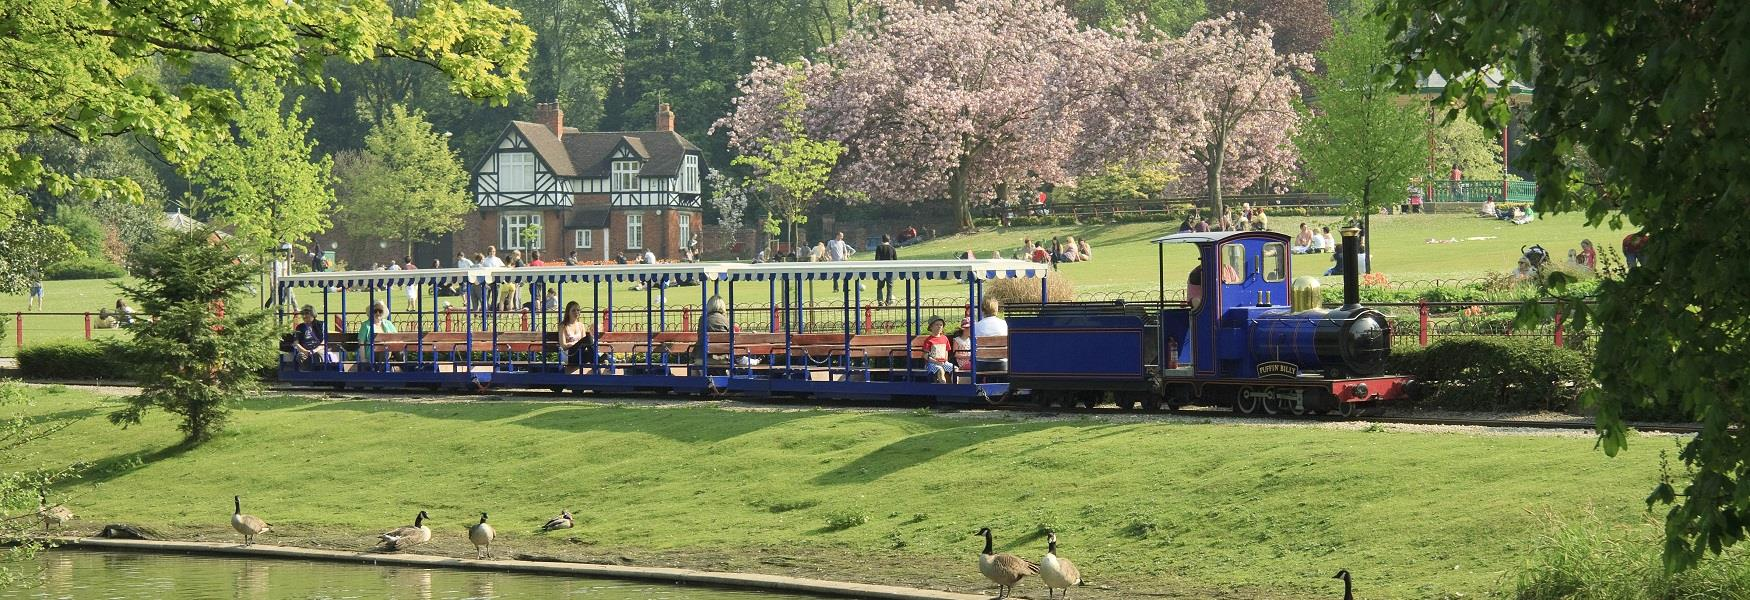 Queen's Park, Chesterfield with train